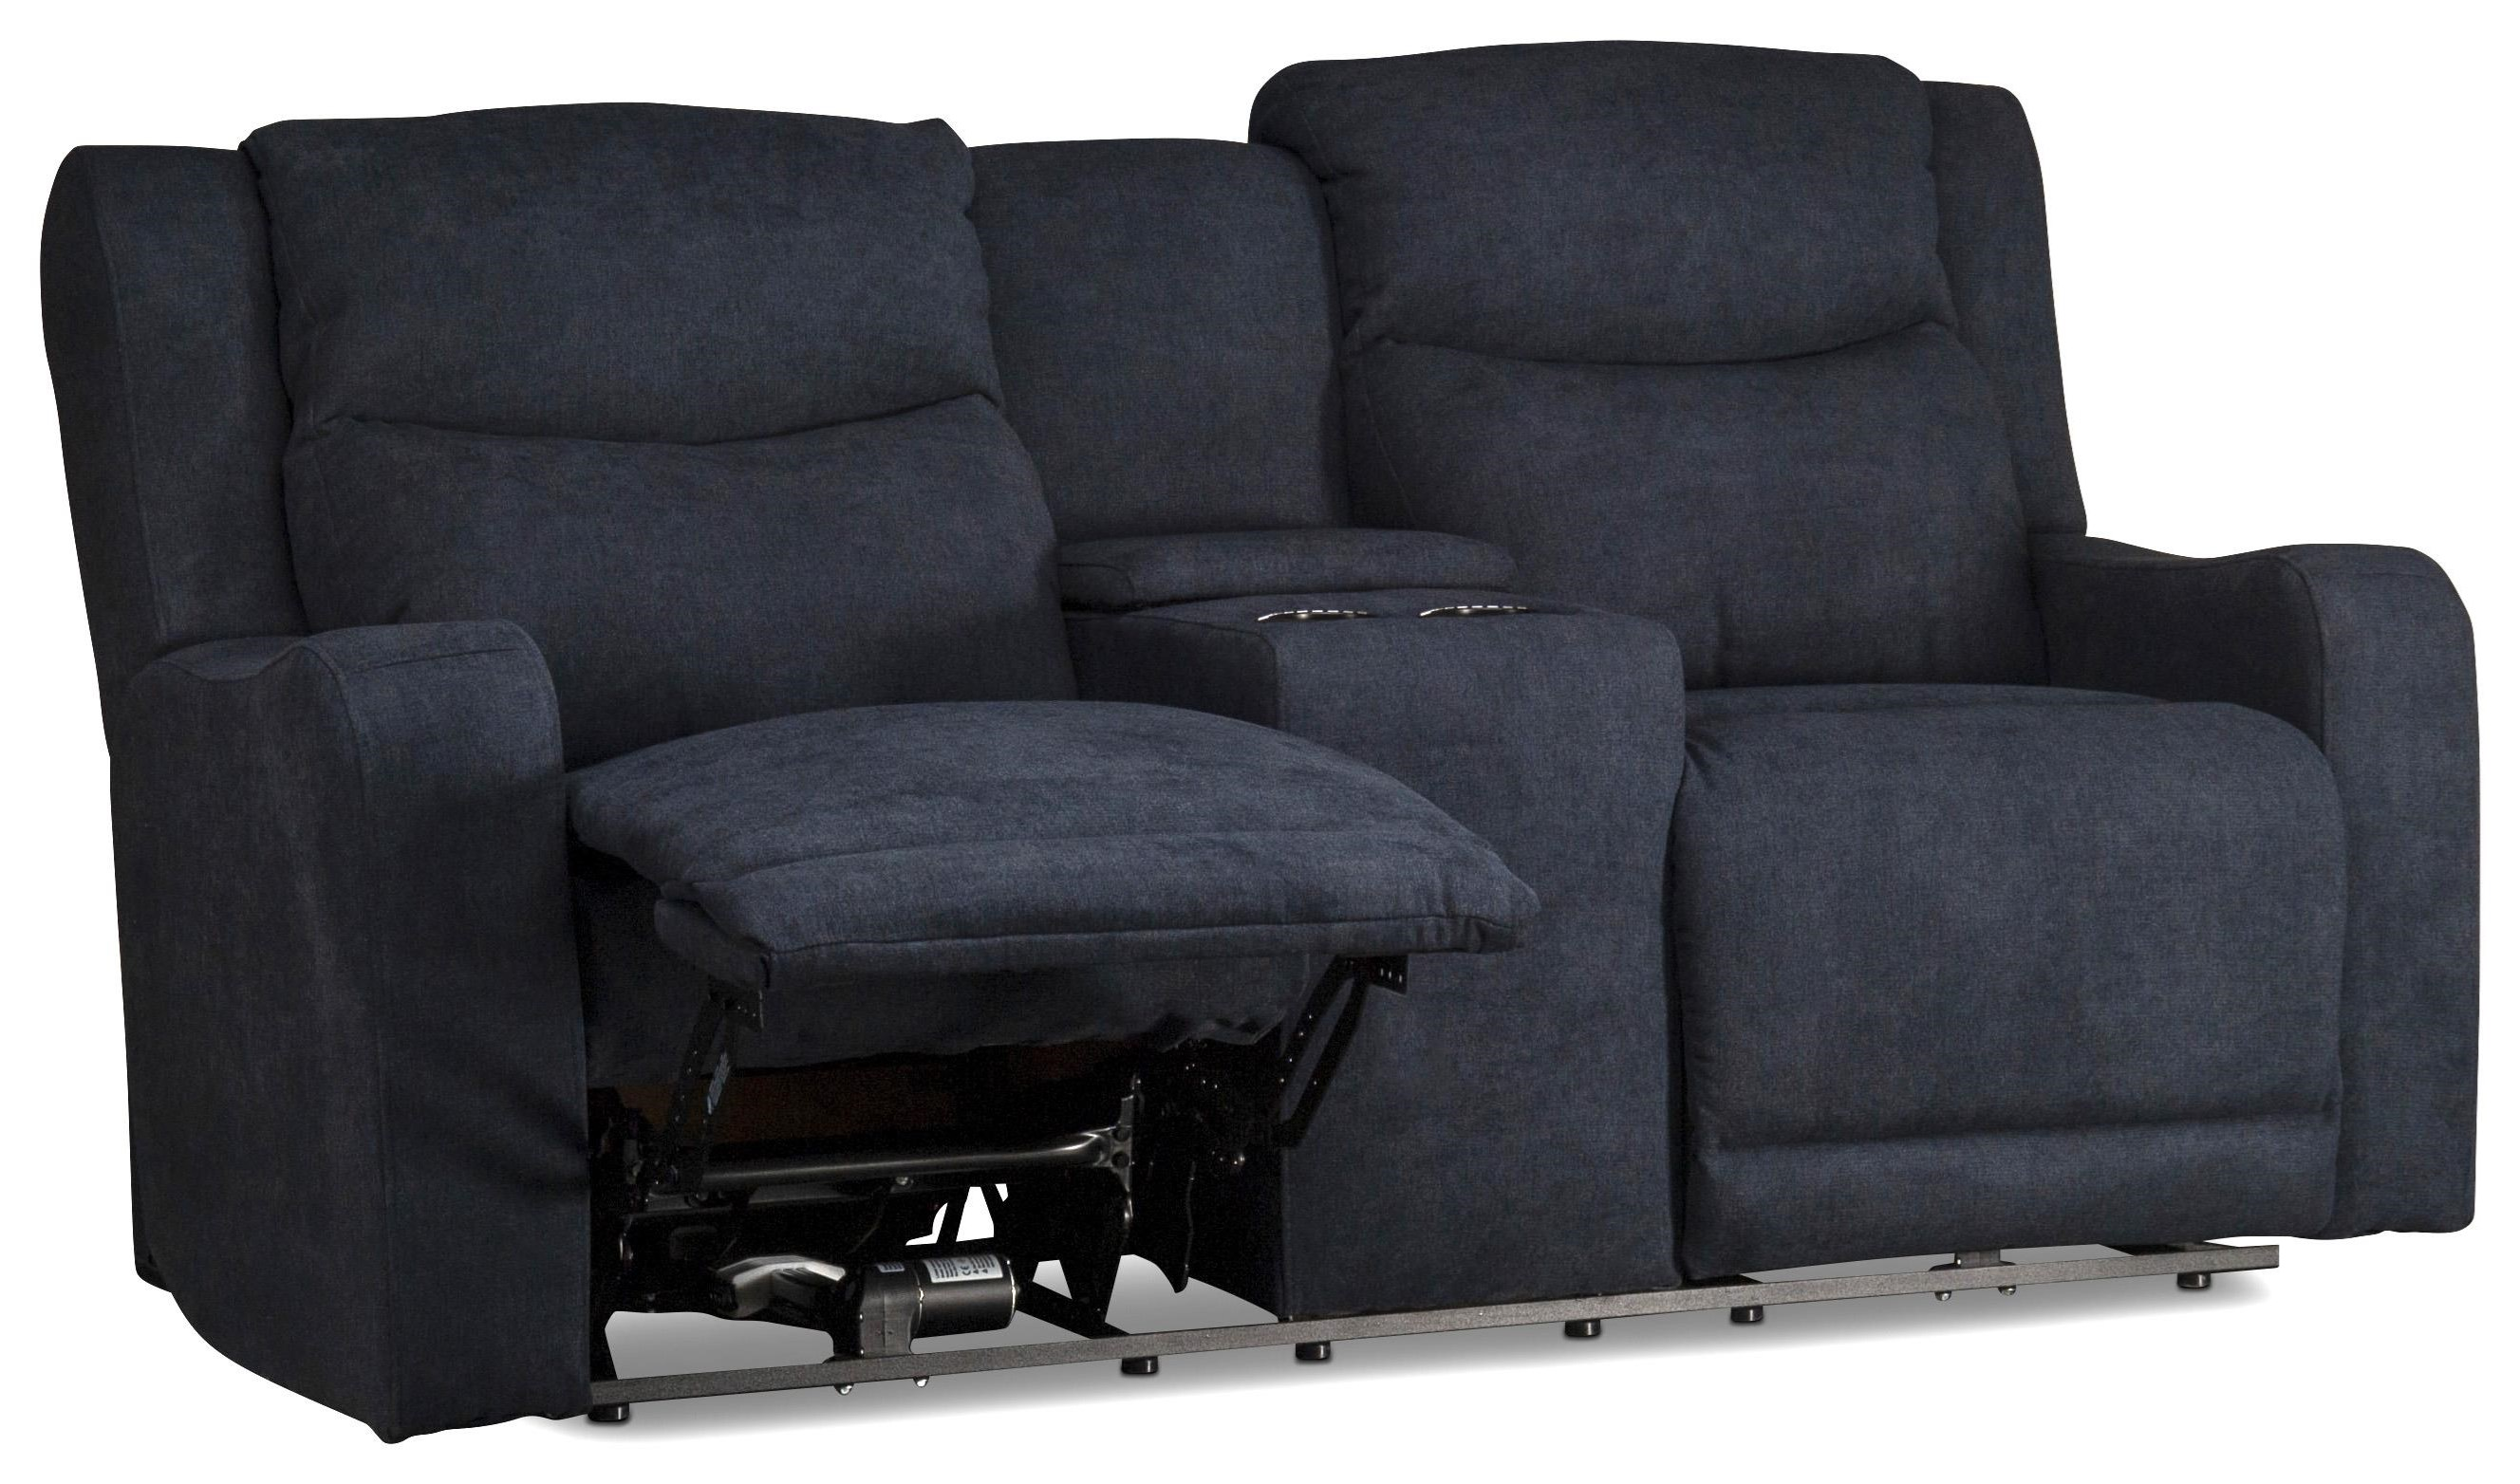 Ryland Ryland Power Reclining Console Loveseat by Klaussner at Morris Home